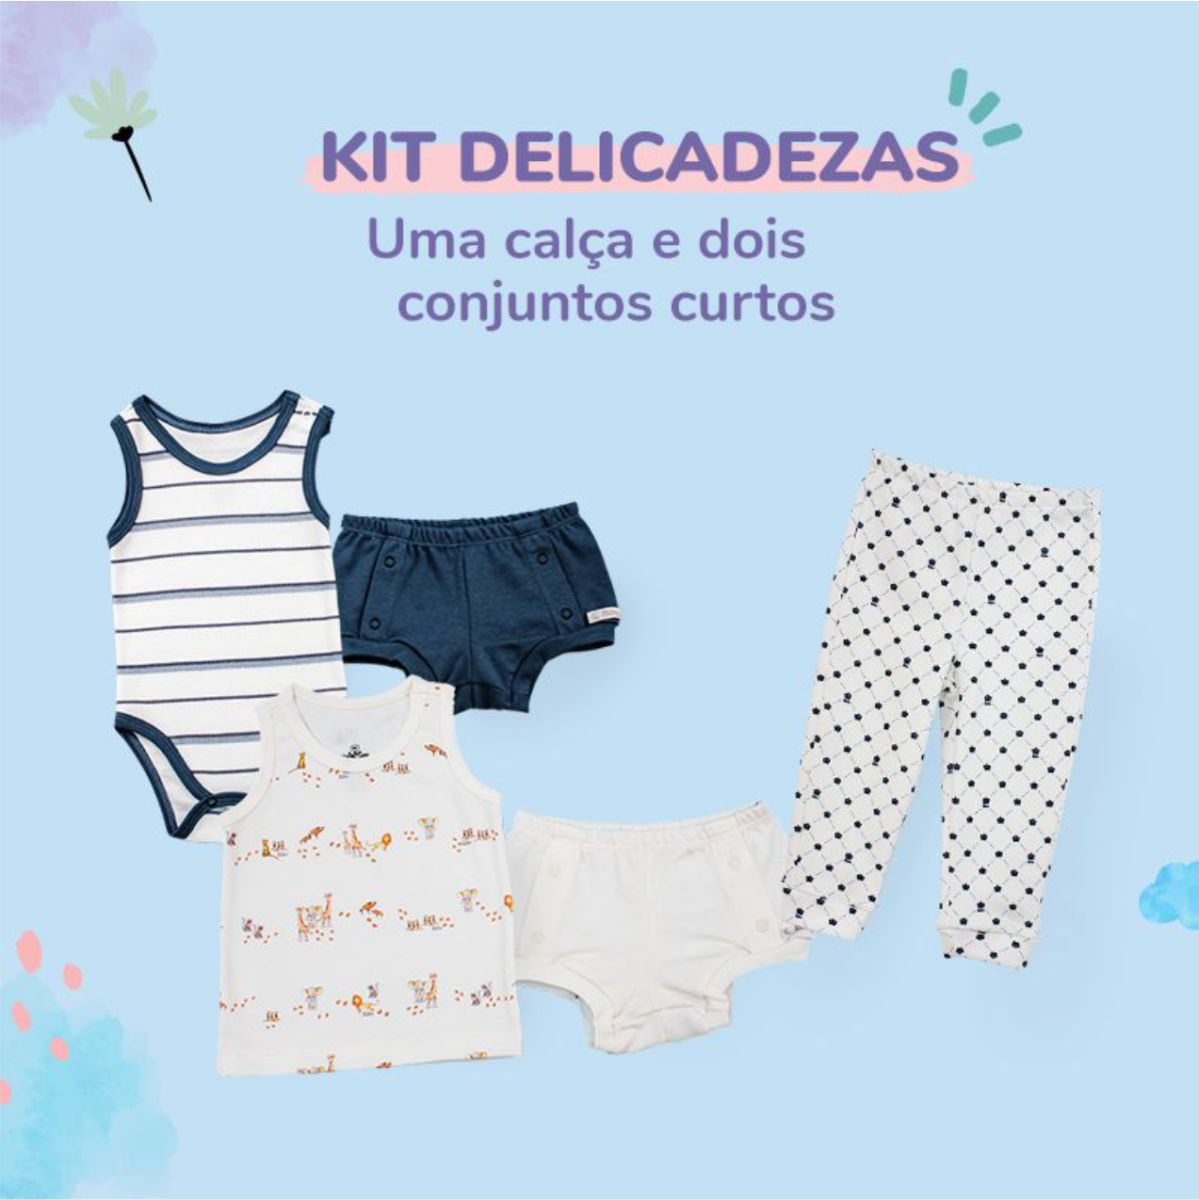 Kit Delicadezas